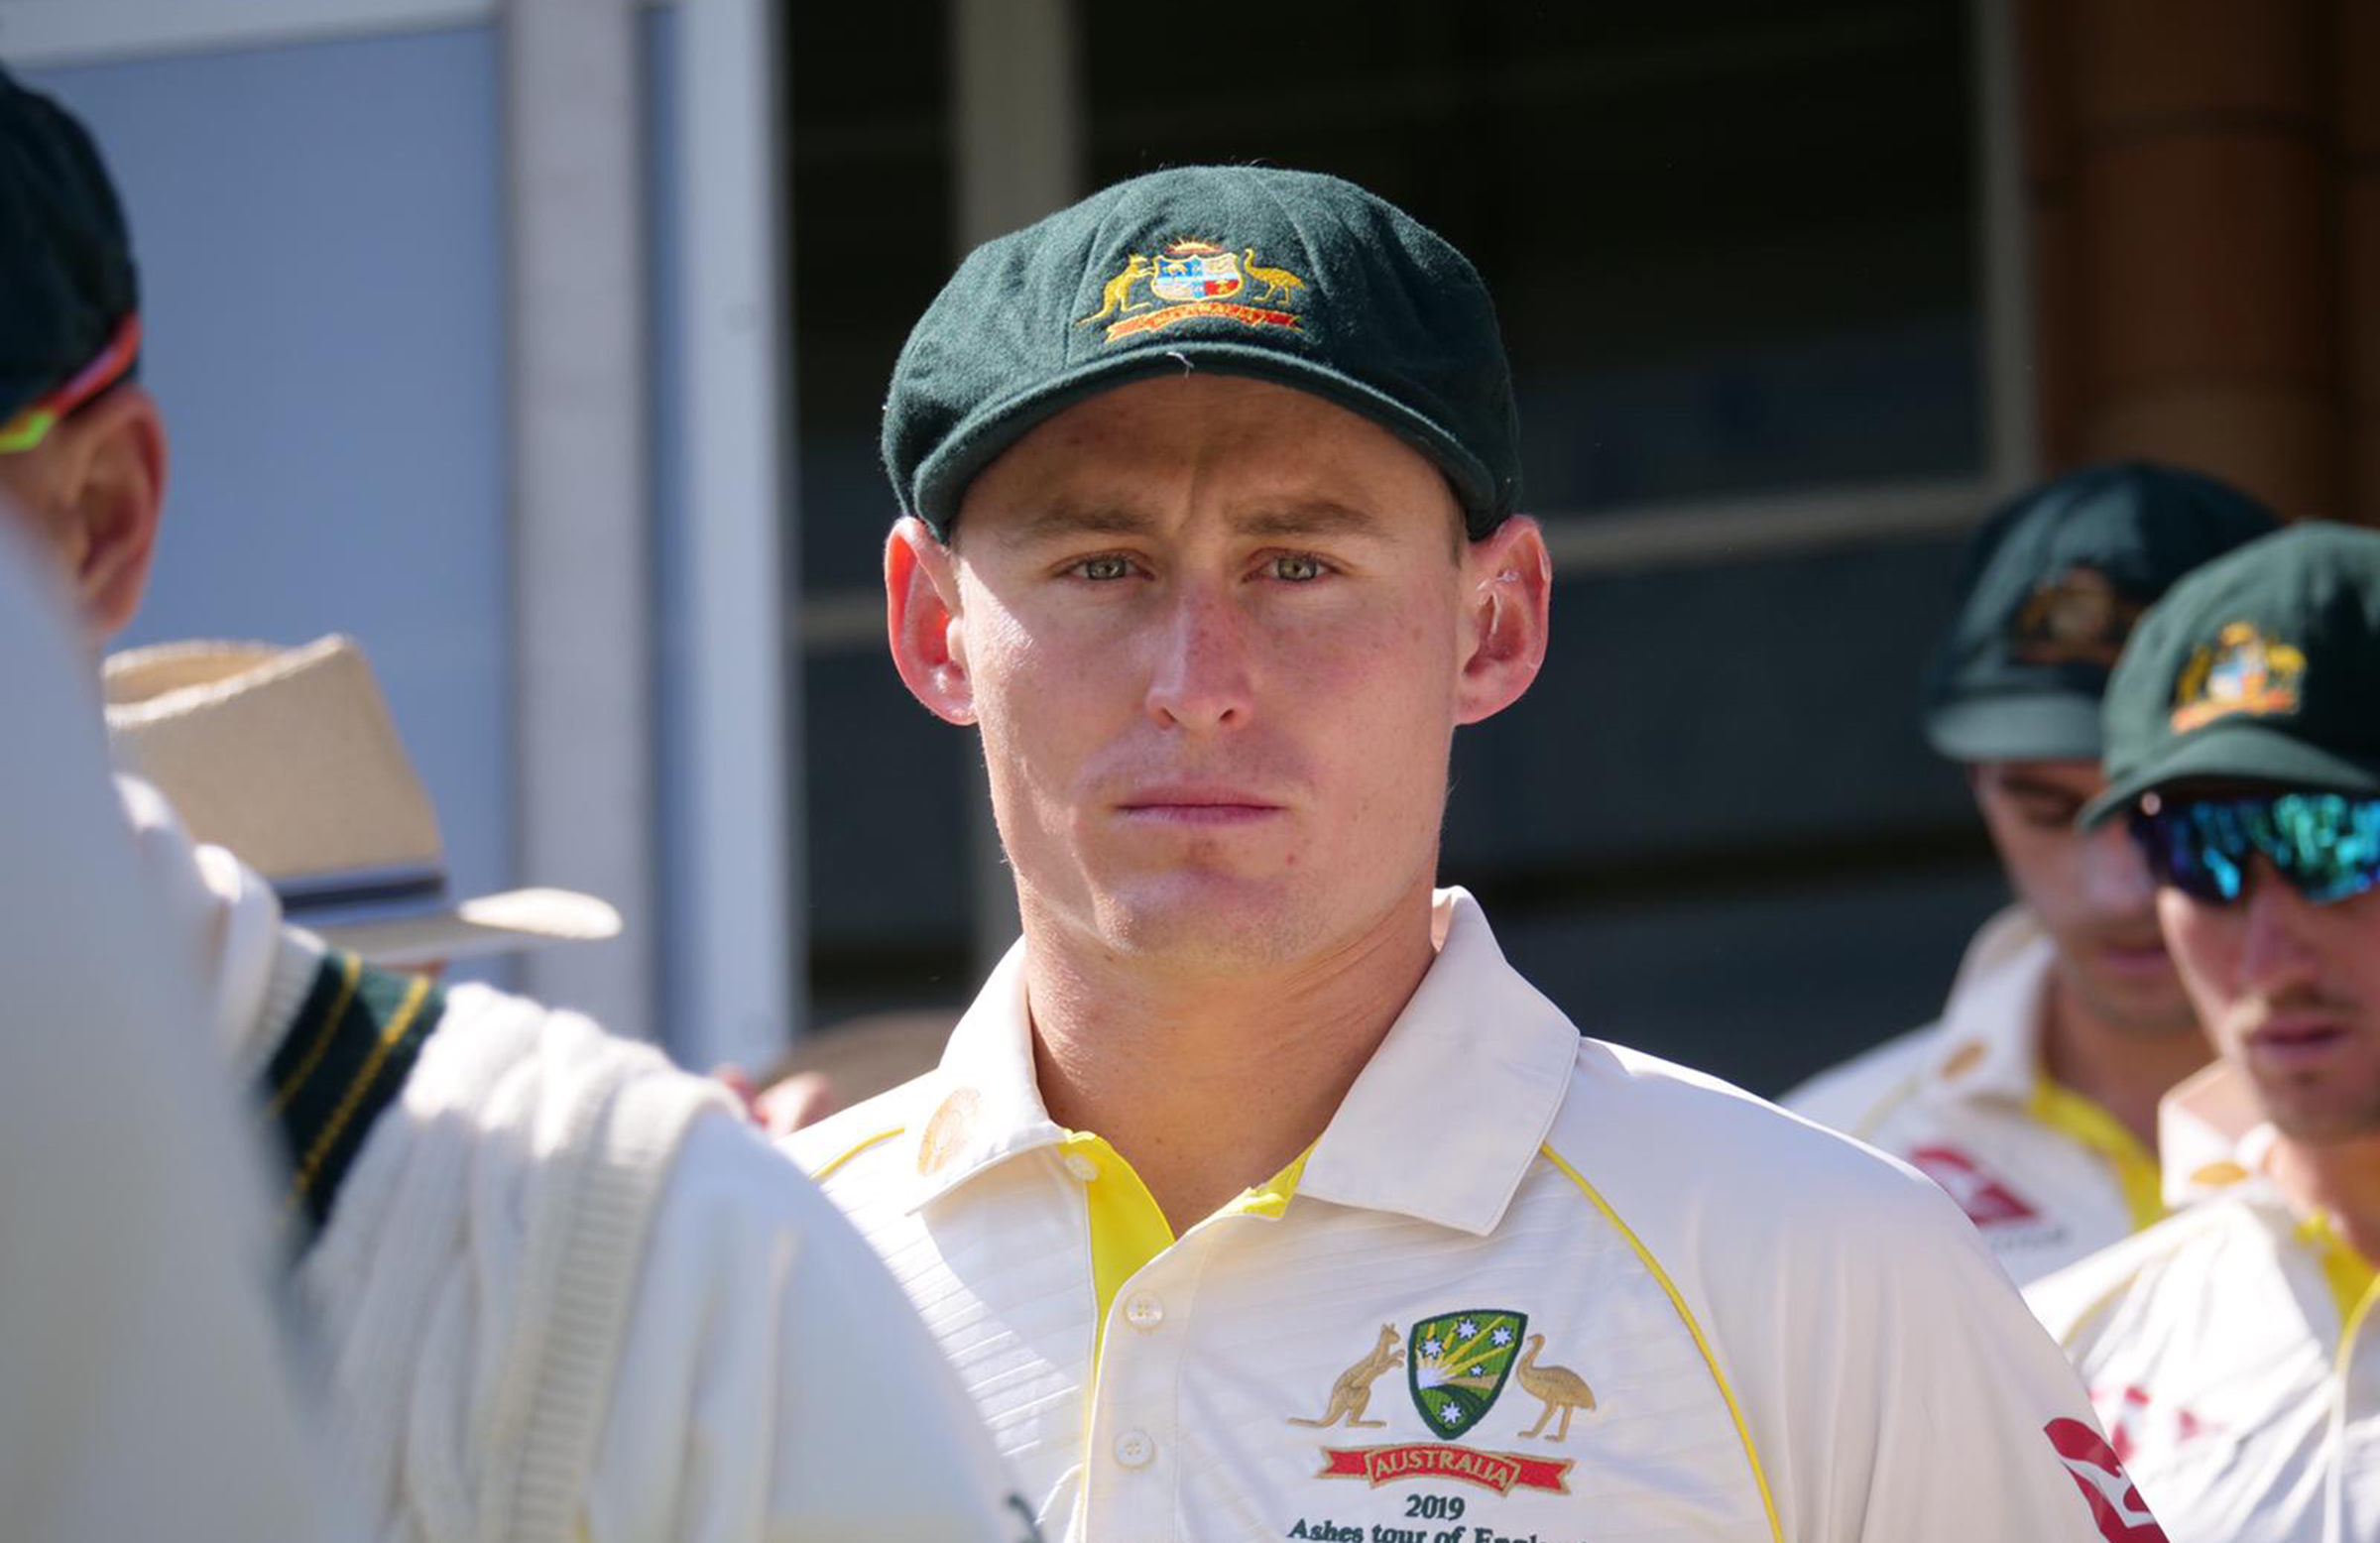 Labuschagne has been subbed in for Smith // Getty